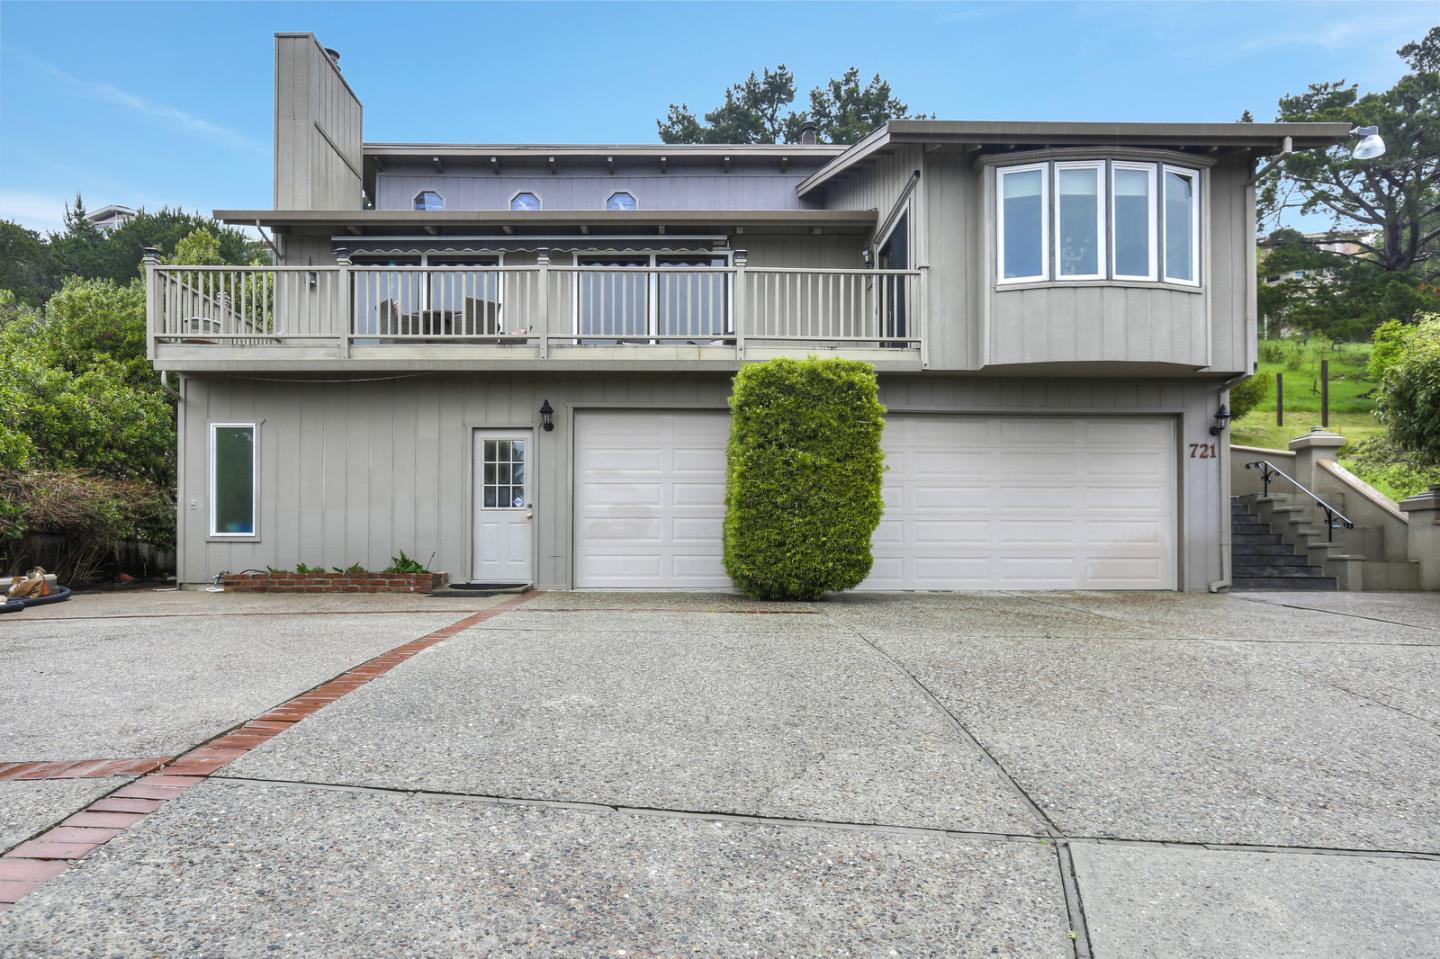 Detail Gallery Image 1 of 1 For Clubhouse Dr, Aptos, CA 95003 - 3 Beds | 2/1 Baths